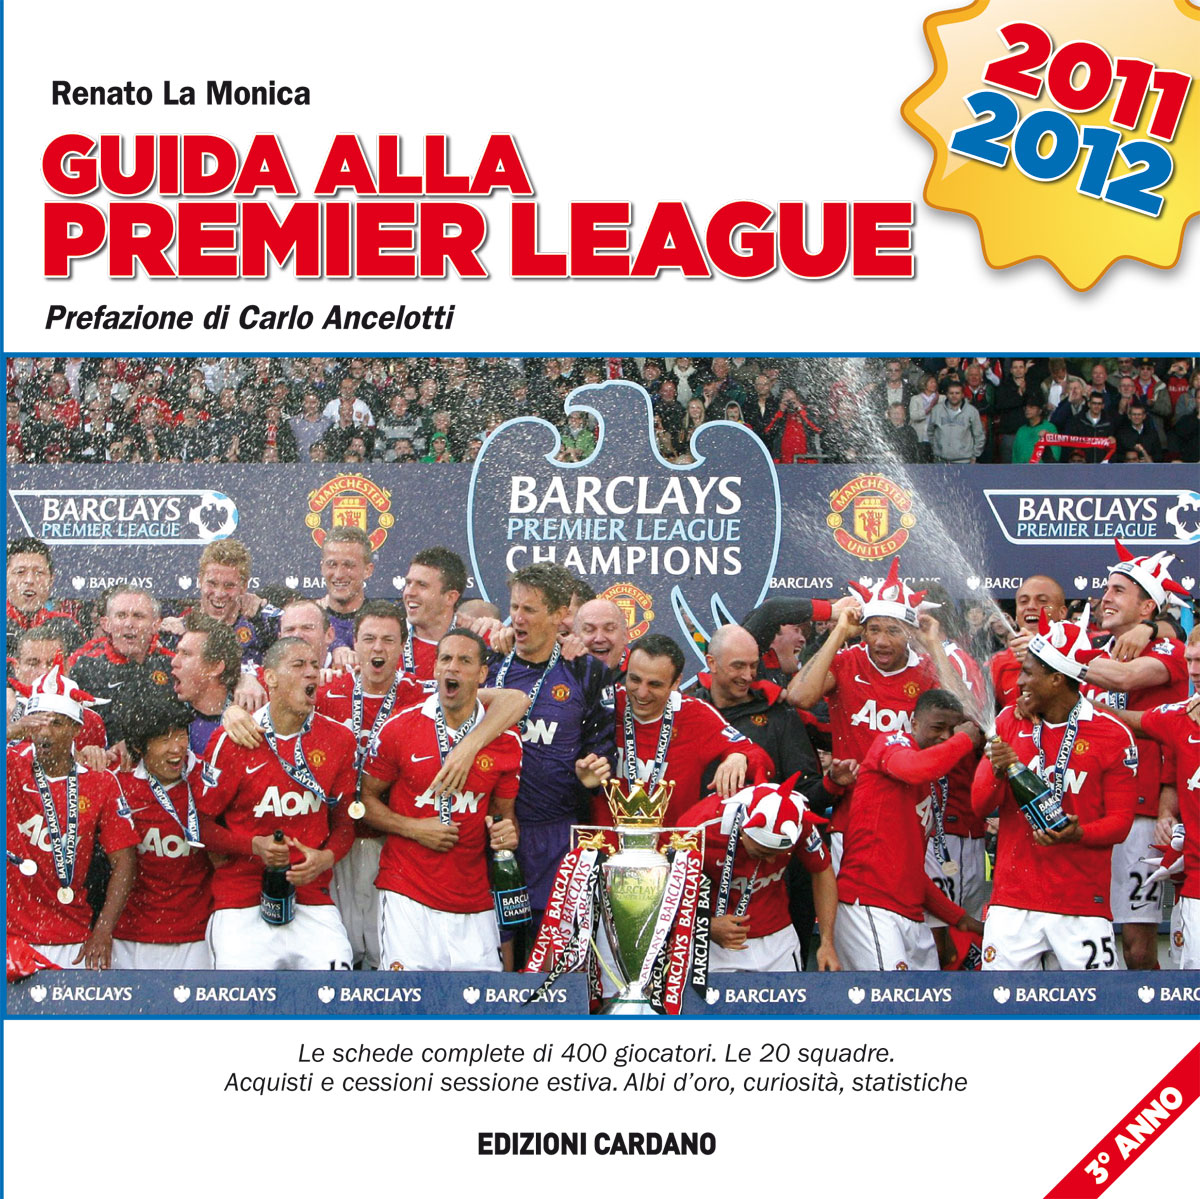 Premier league magica com ases - 933952